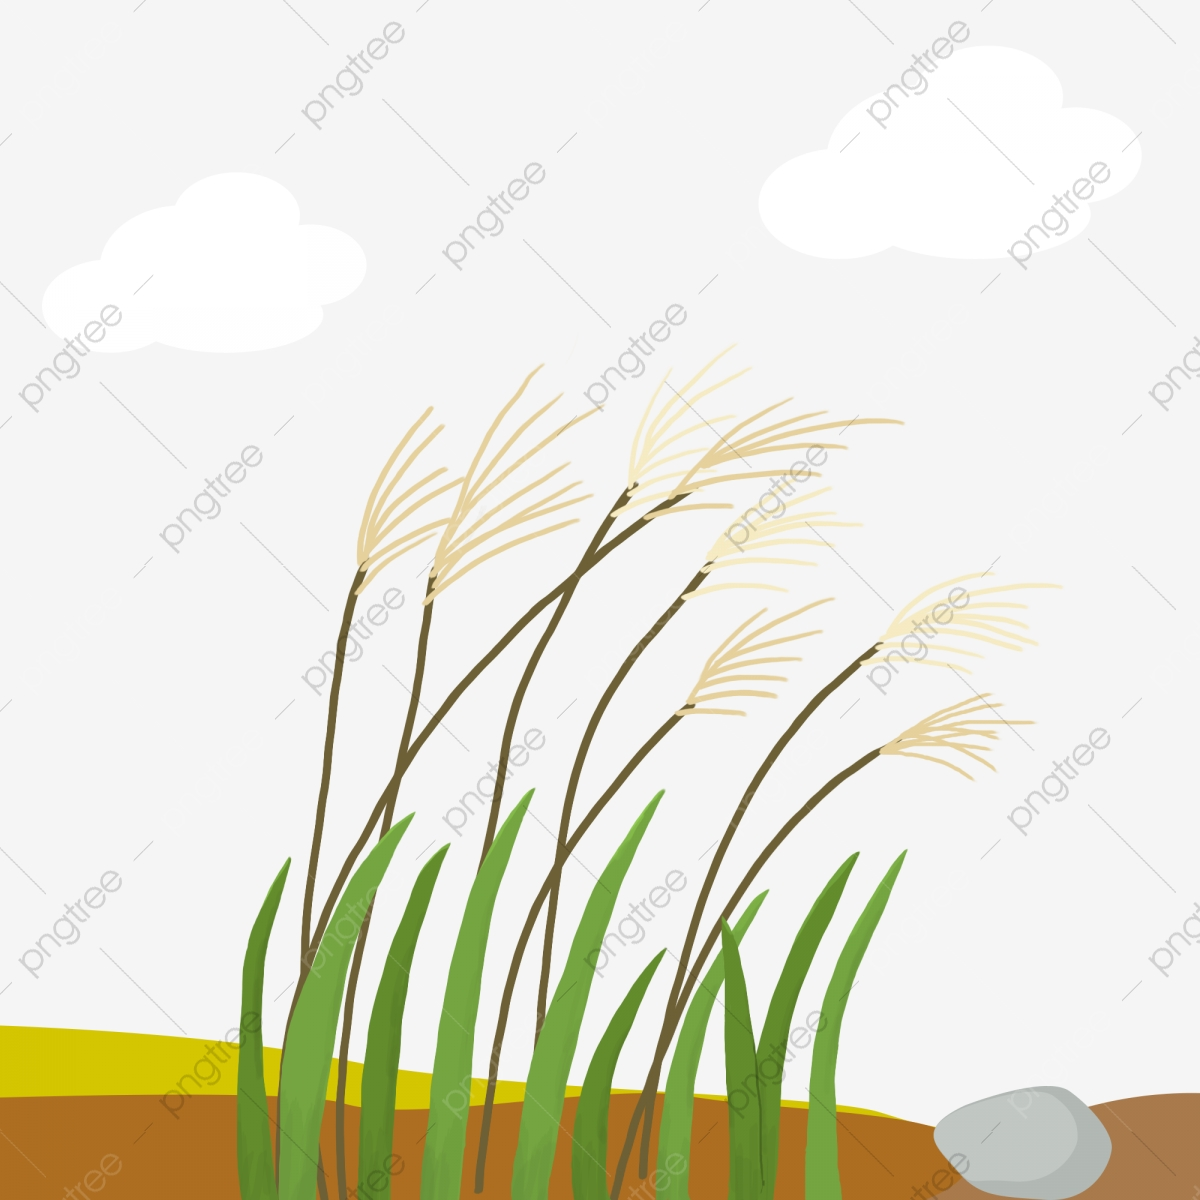 Reed Shore Ashore Reed Grass Blue Sky White Clouds Png Transparent Clipart Image And Psd File For Free Download